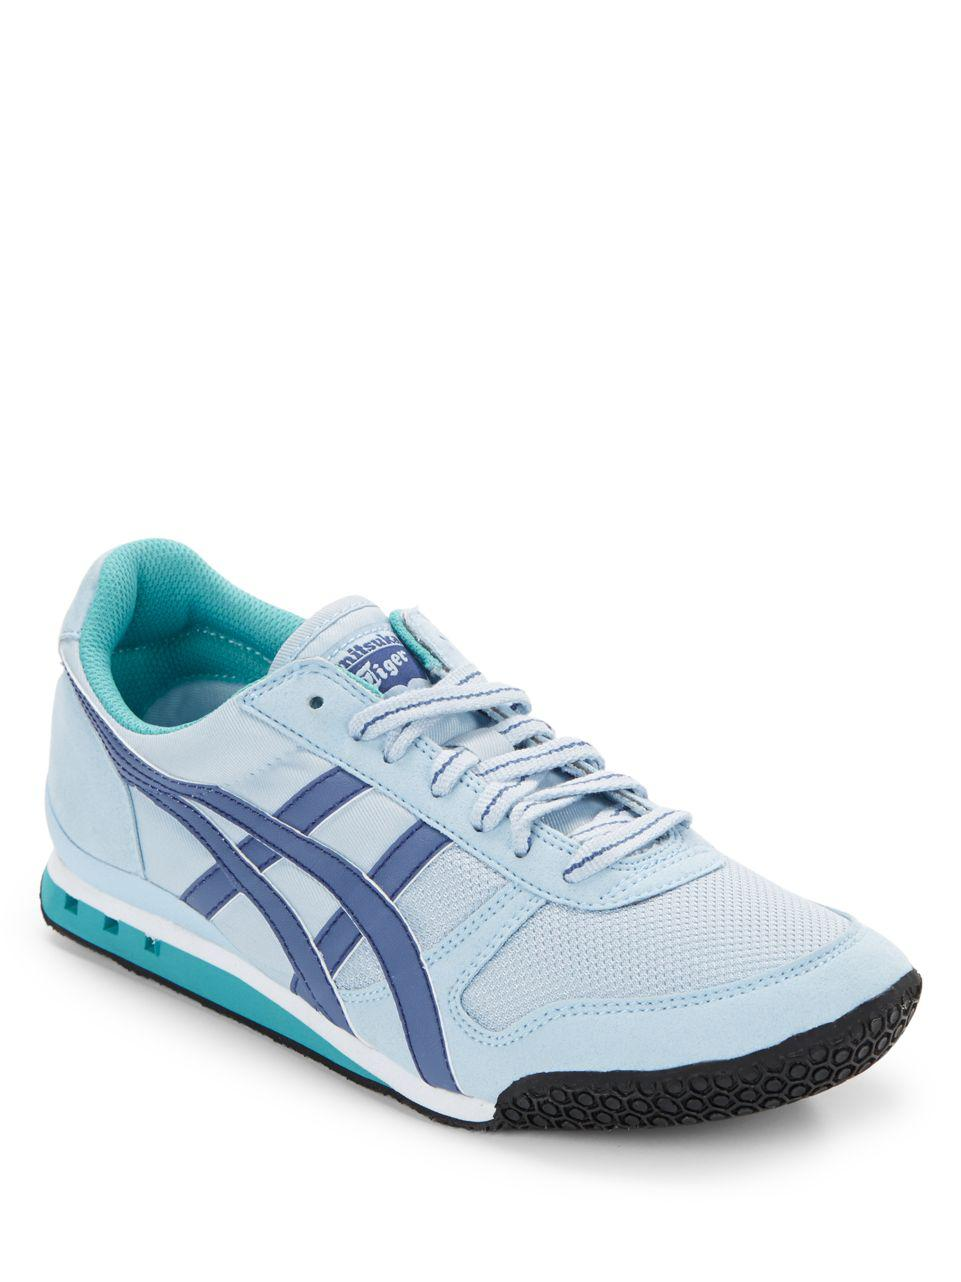 brand new 71343 acbbc Asics Ultimate 81 Sneakers in Blue - Lyst